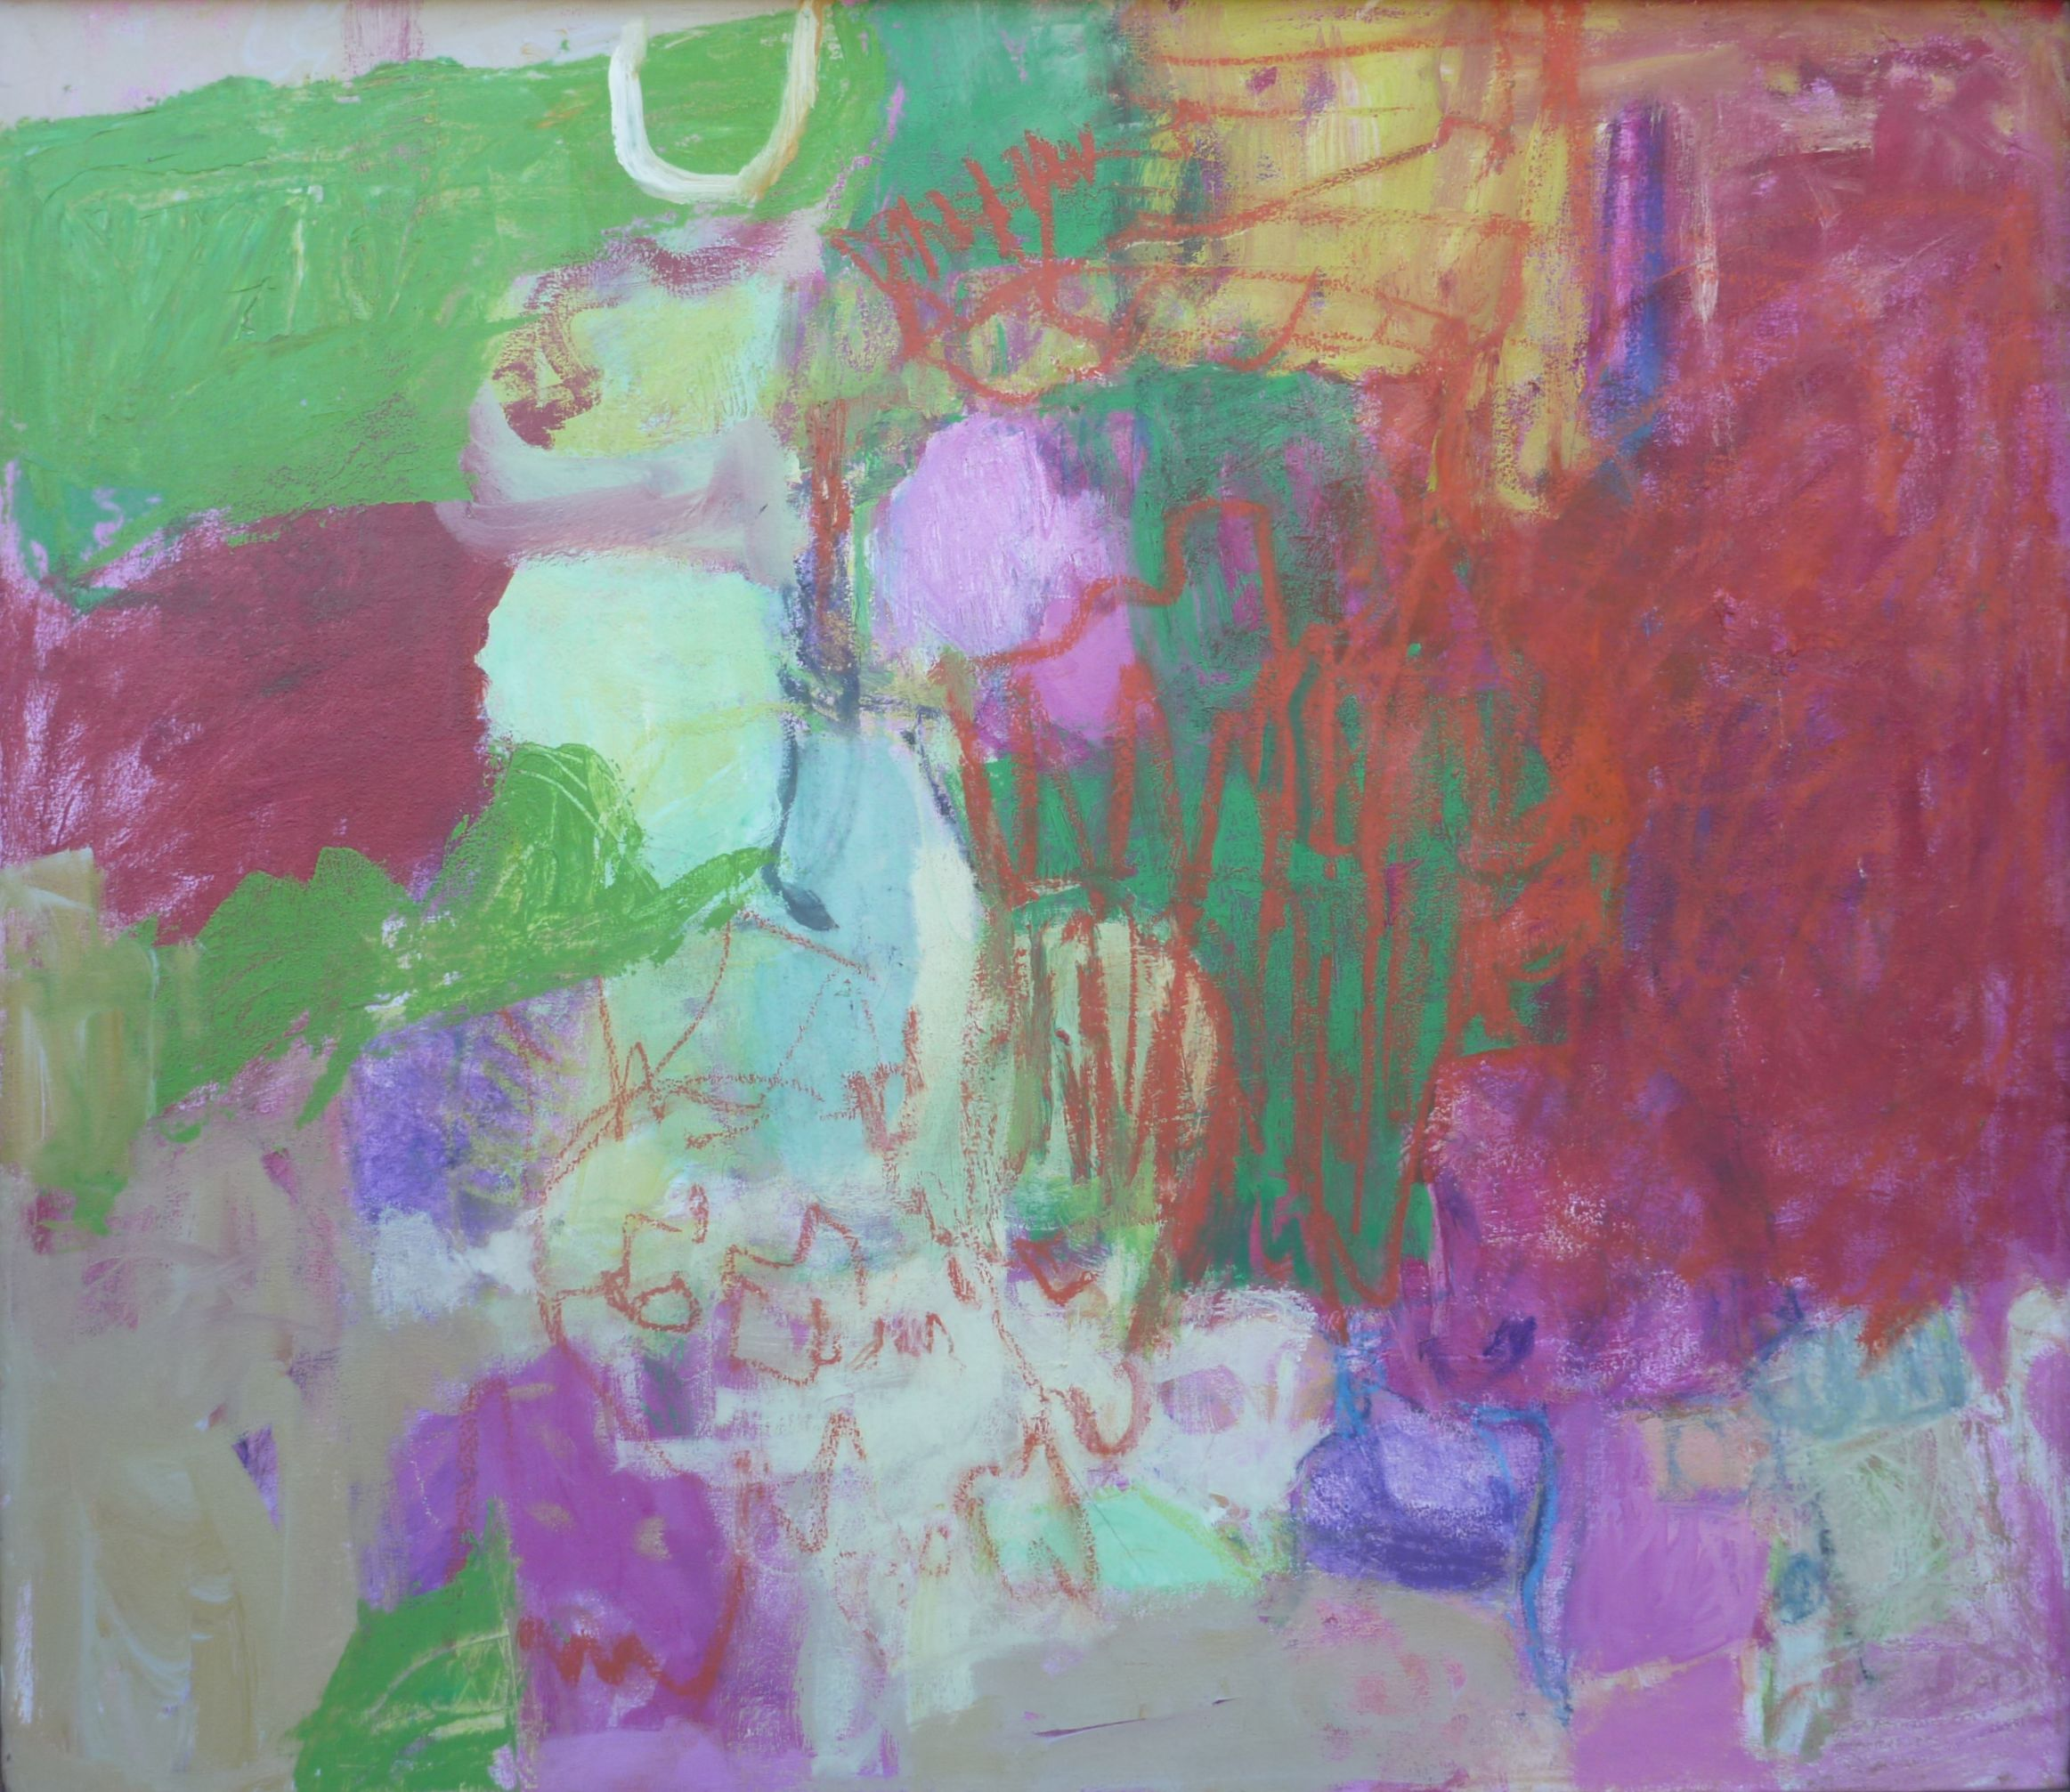 fumiko kashiwagi no title 30x26 acrylic oil pastel on canvas